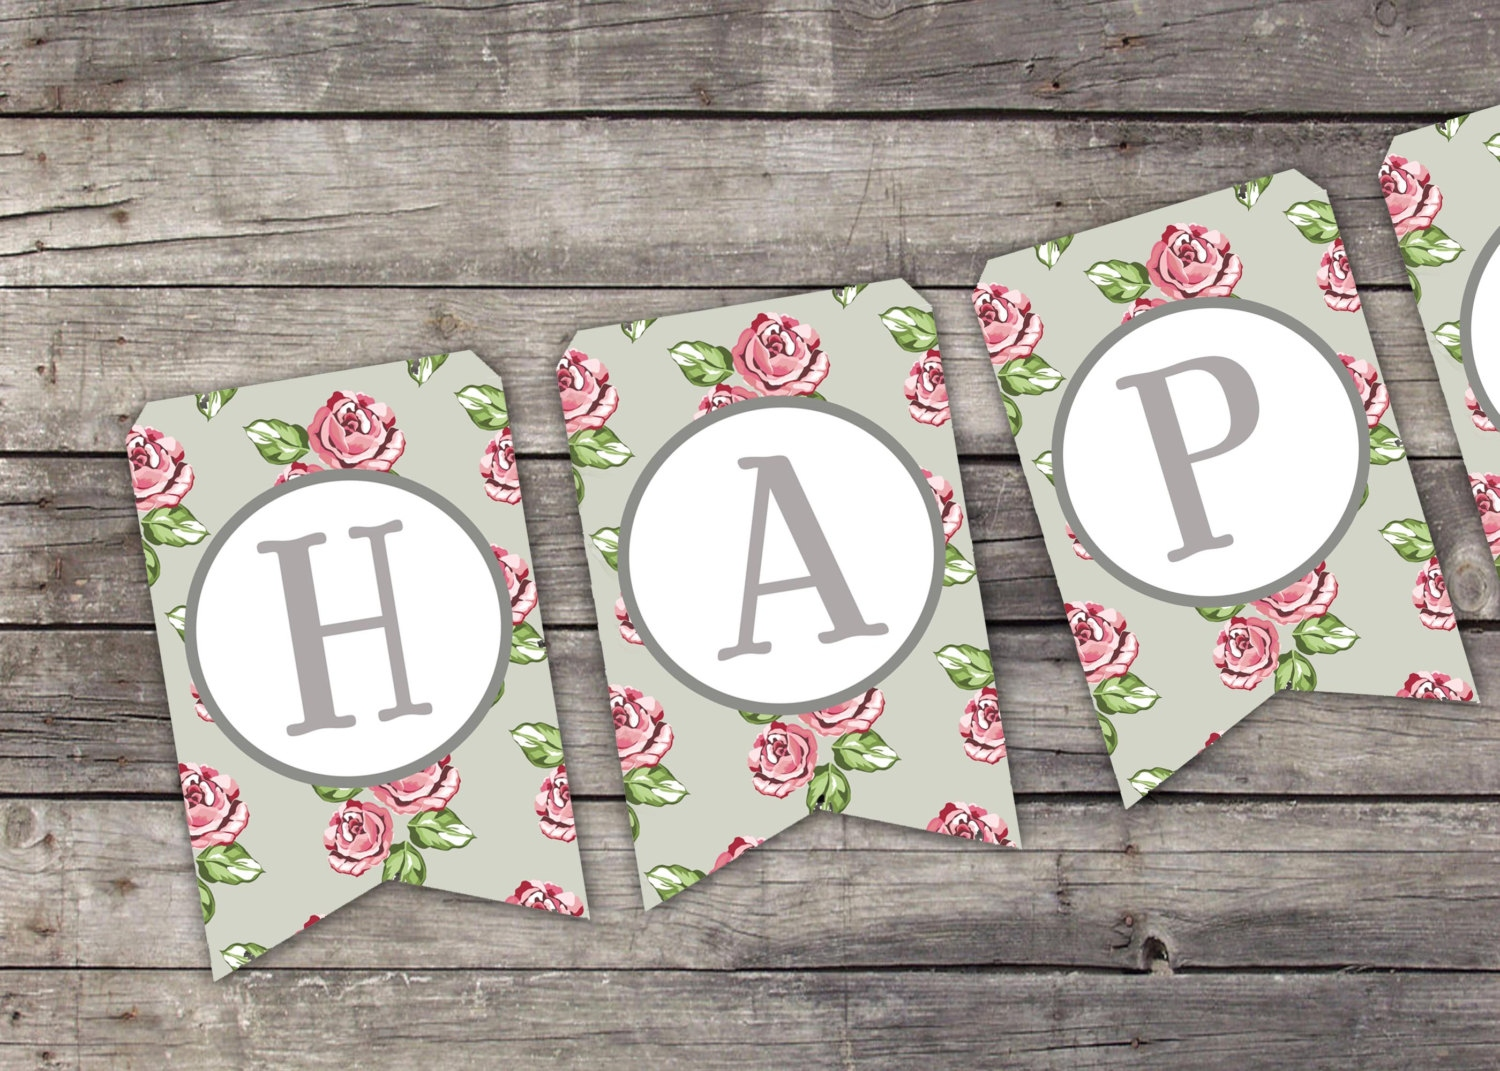 vintage birthday banner ; homemade-happy-birthday-banner-ideas-unique-printable-happy-birthday-banner-vintage-floral-printable-of-homemade-happy-birthday-banner-ideas